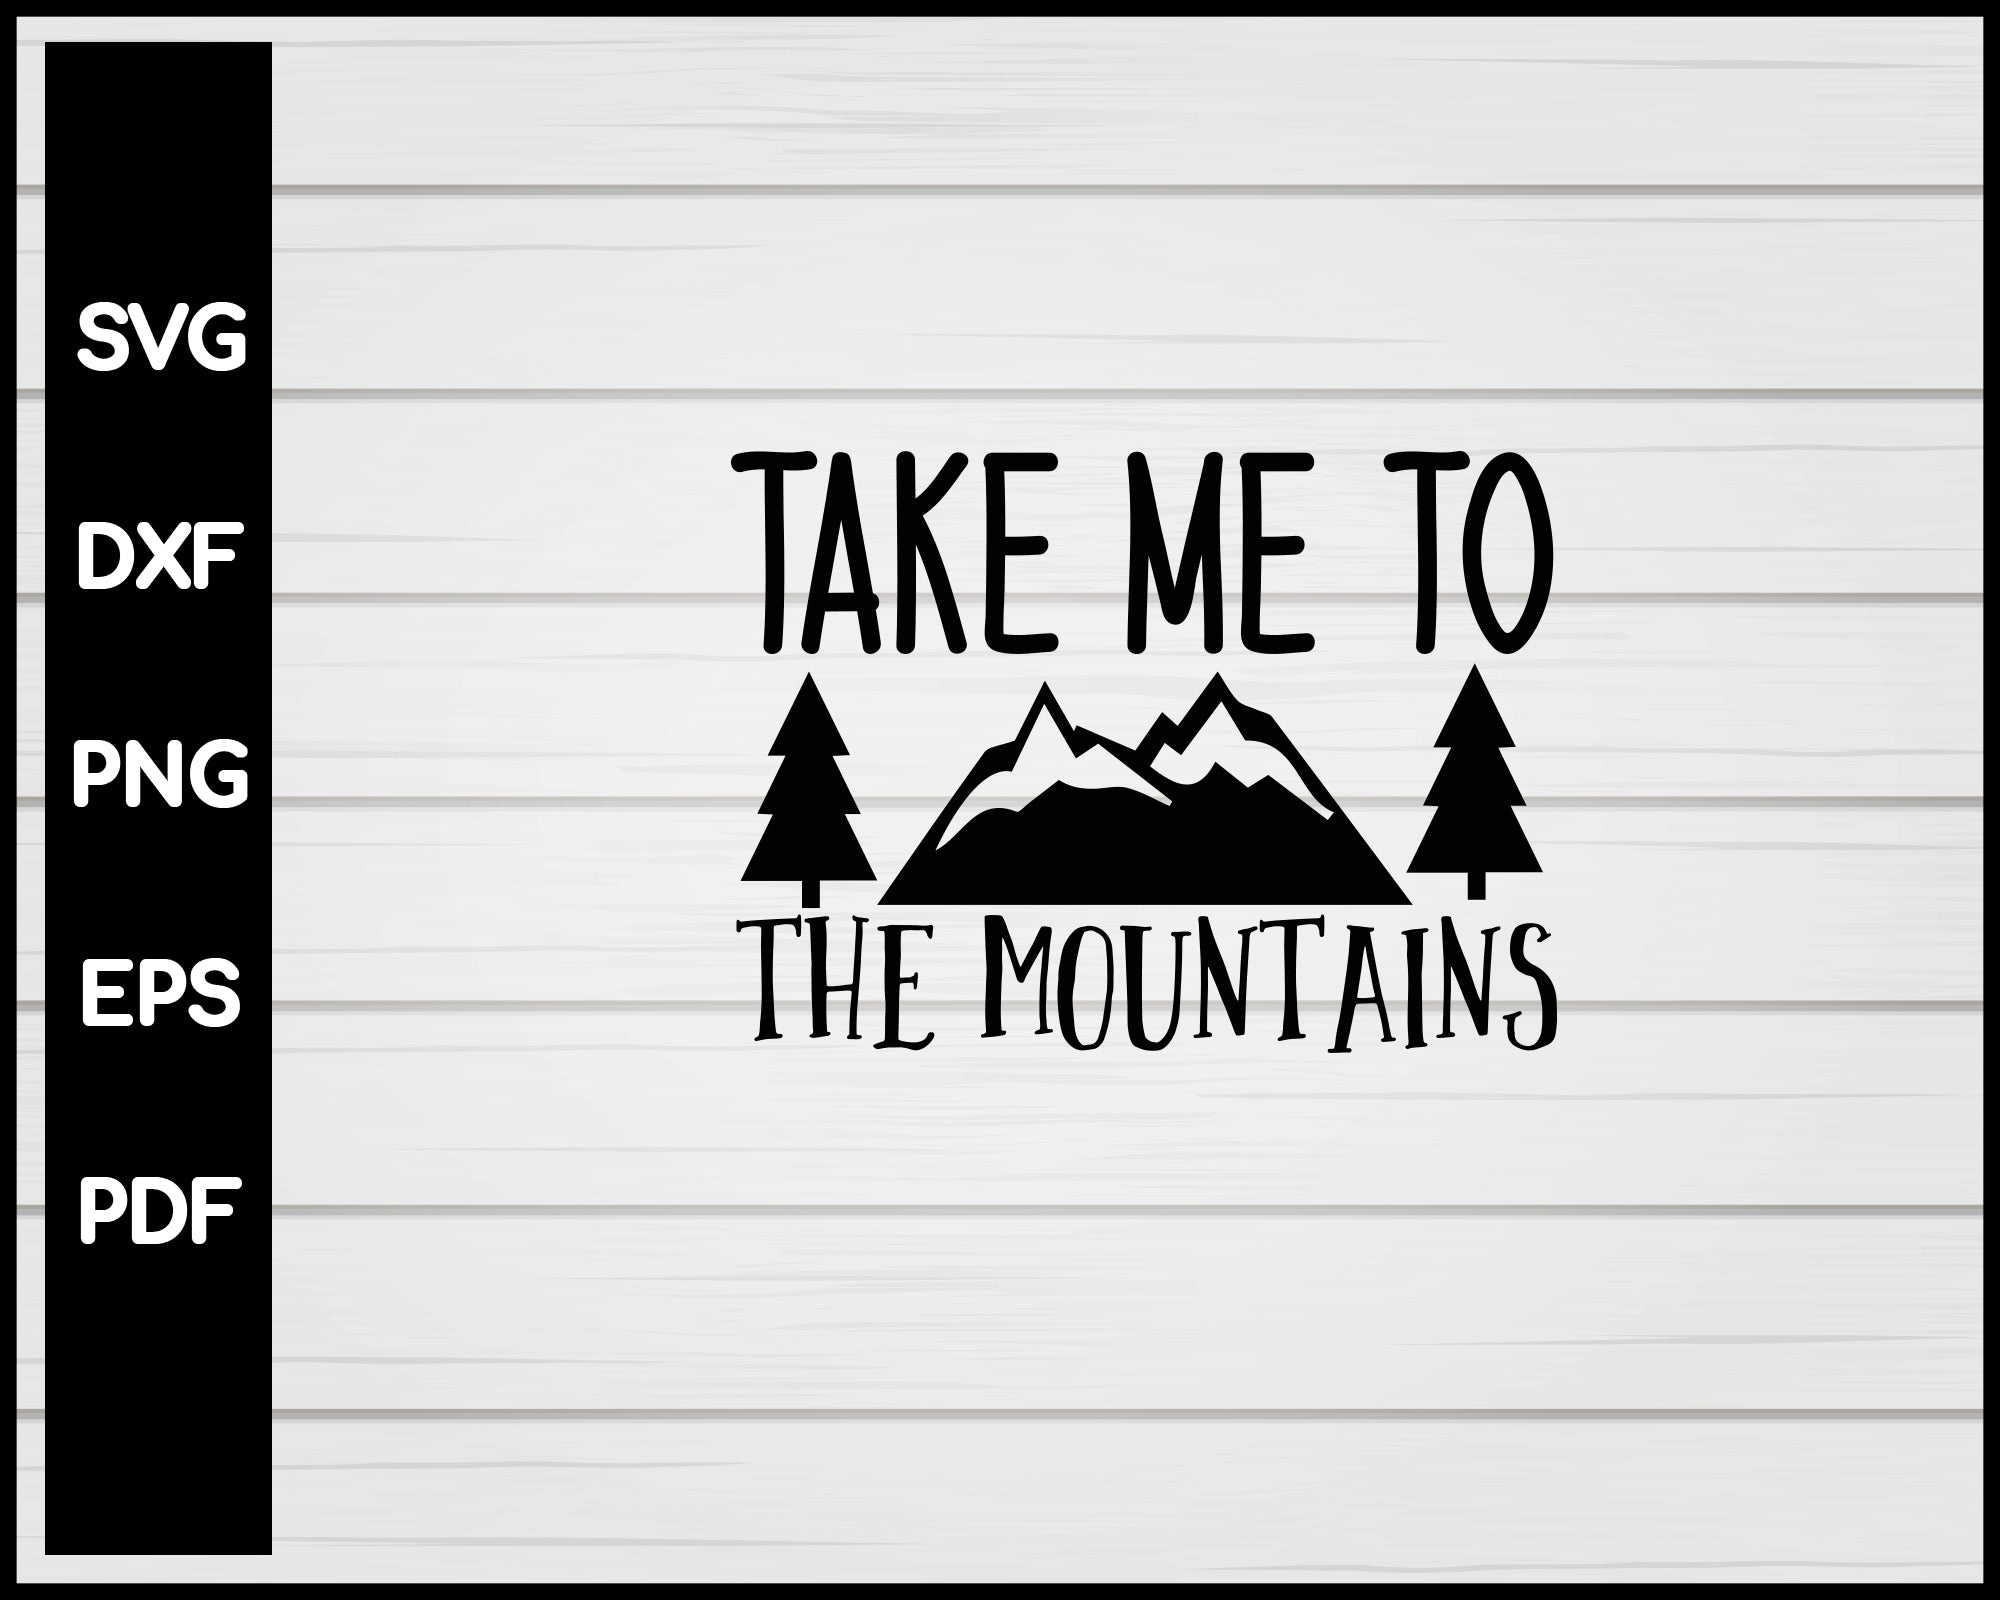 Take Me To The Mountains svg Cut File For Cricut Silhouette eps png dxf Printable Files